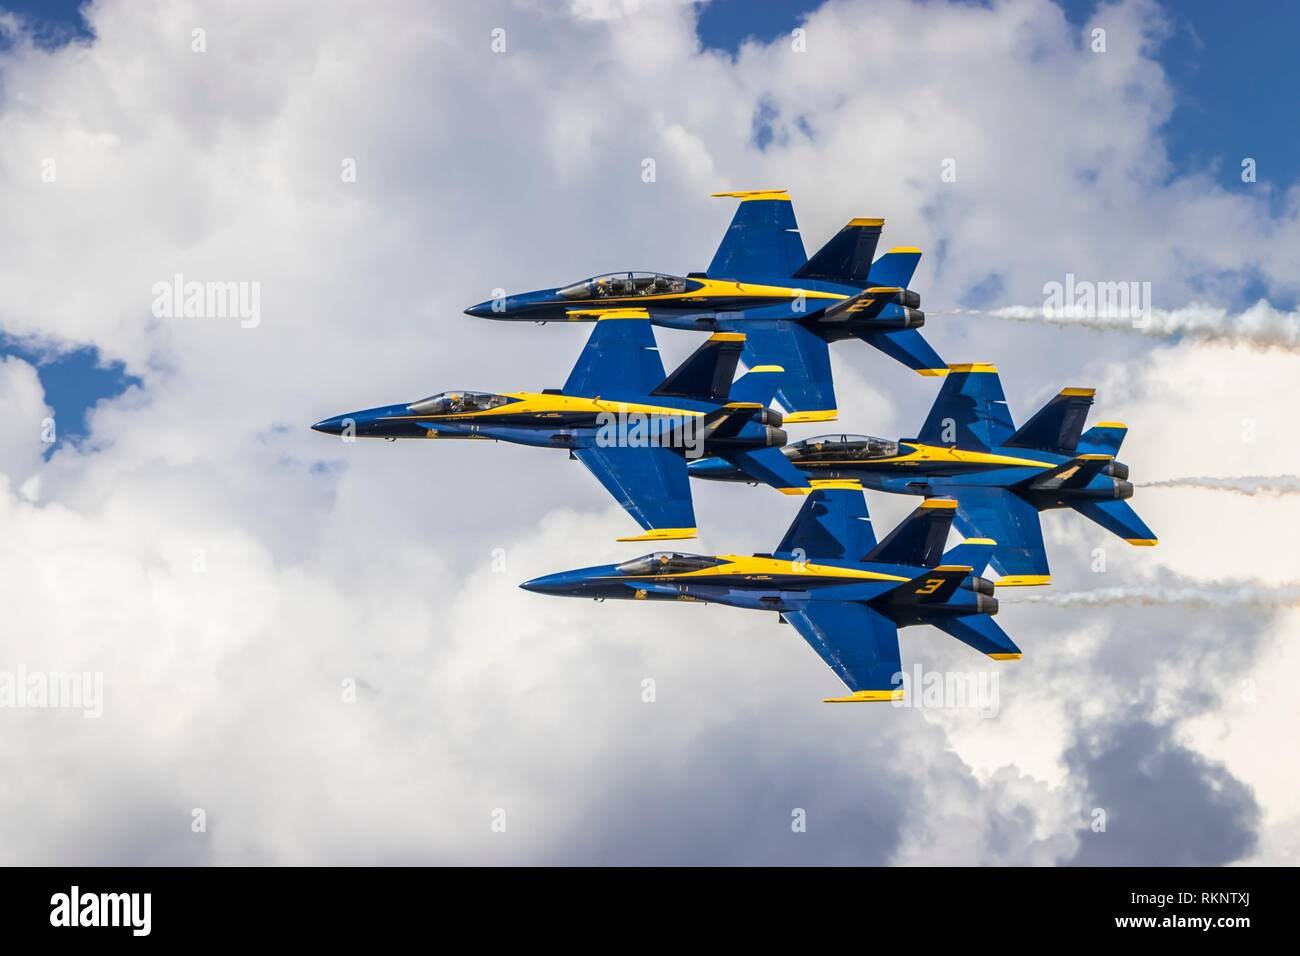 The Blue Angels air acrobatic team at the 2017 Airshow in Duluth, Minnesota, USA. - Stock Image